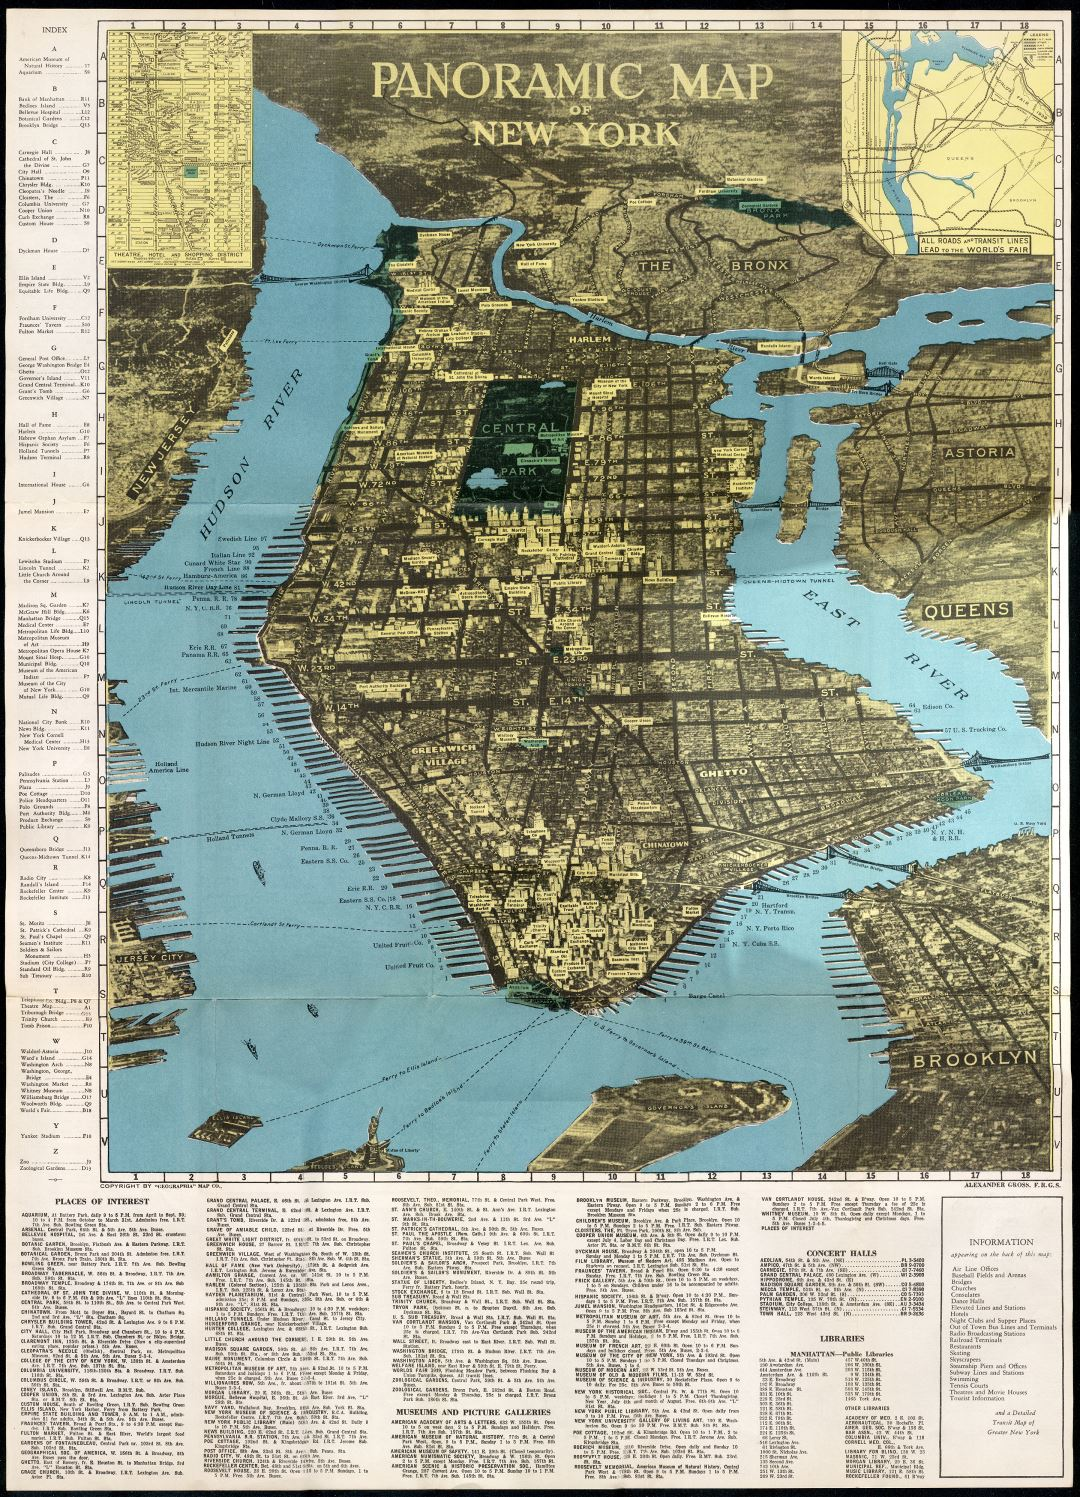 Large scale panoramic map of New York (NYC)